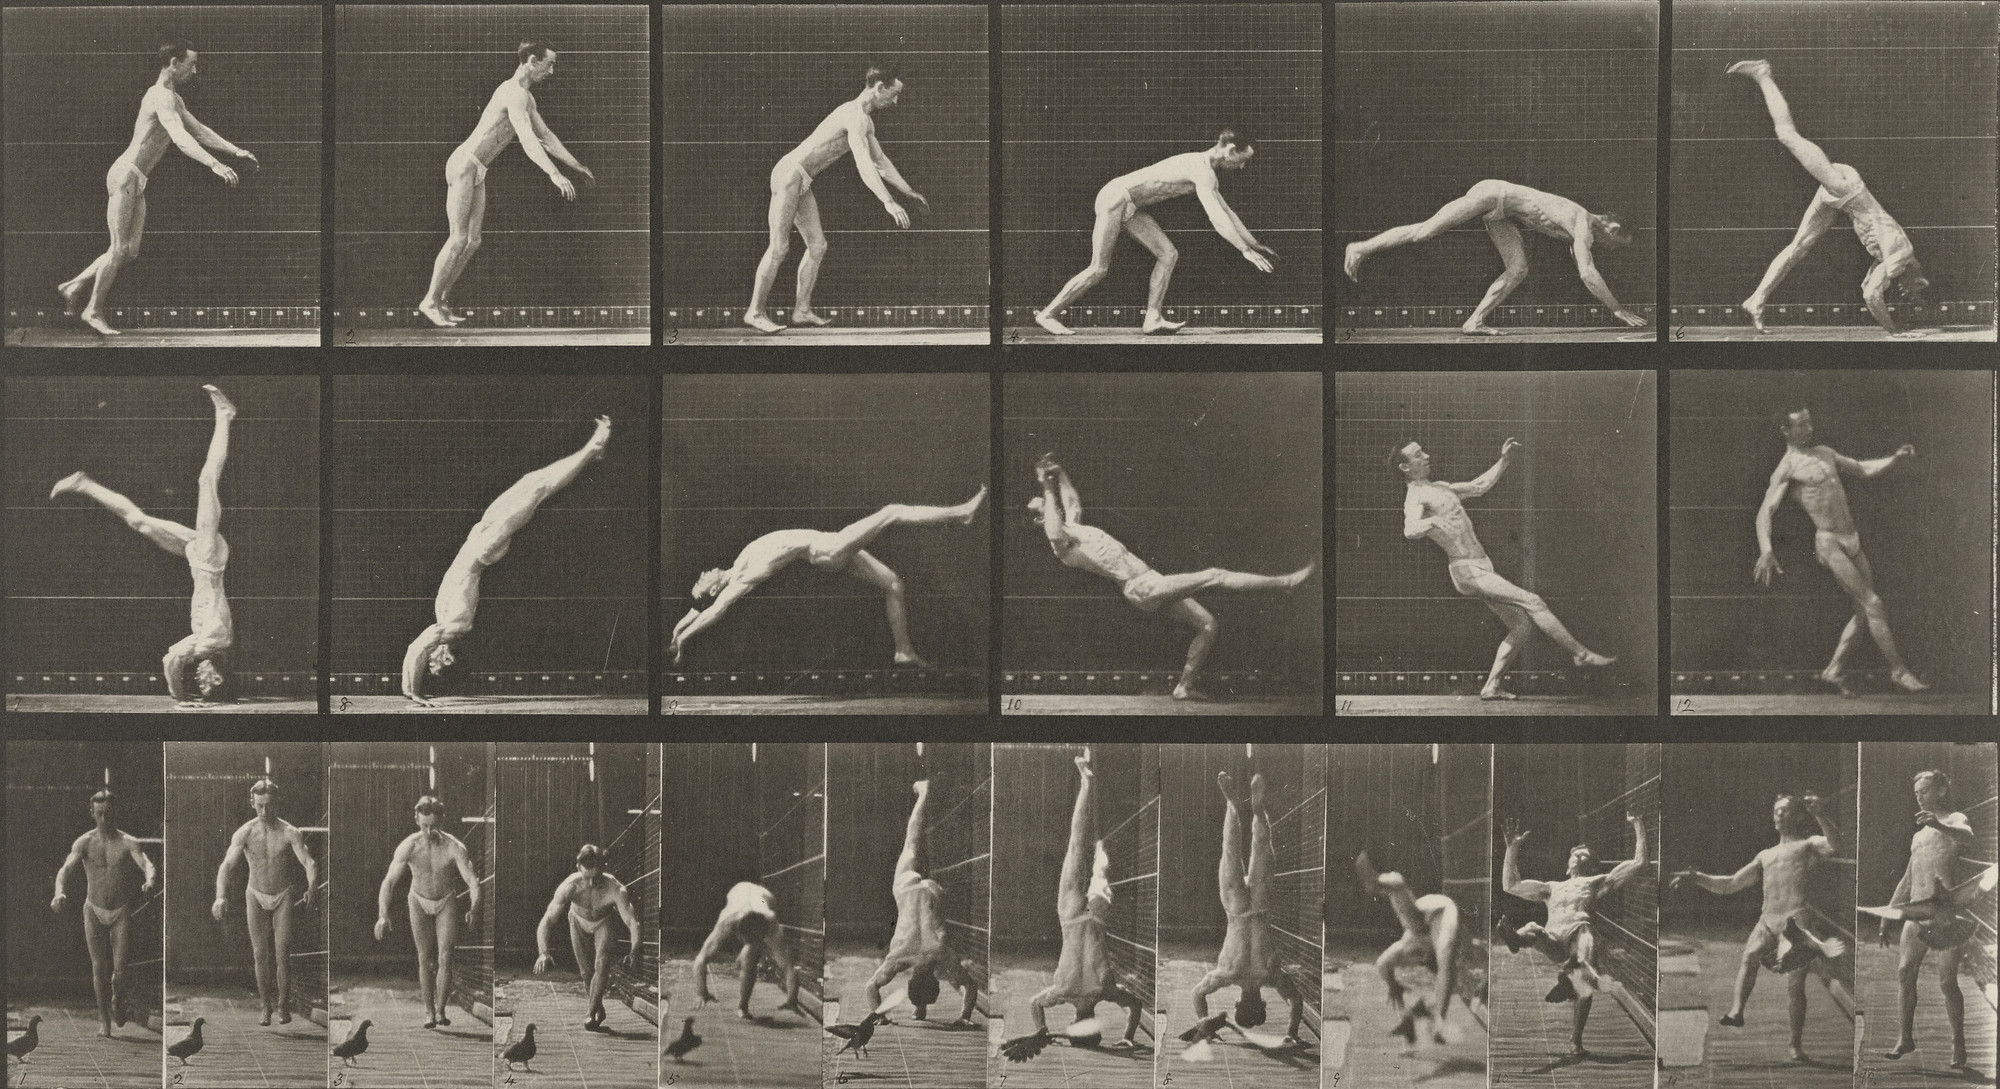 Eadweard J. Muybridge. Head-spring, a Flying Pigeon Interfering: Plate 365 from Animal Locomotion (1887. 1884-86